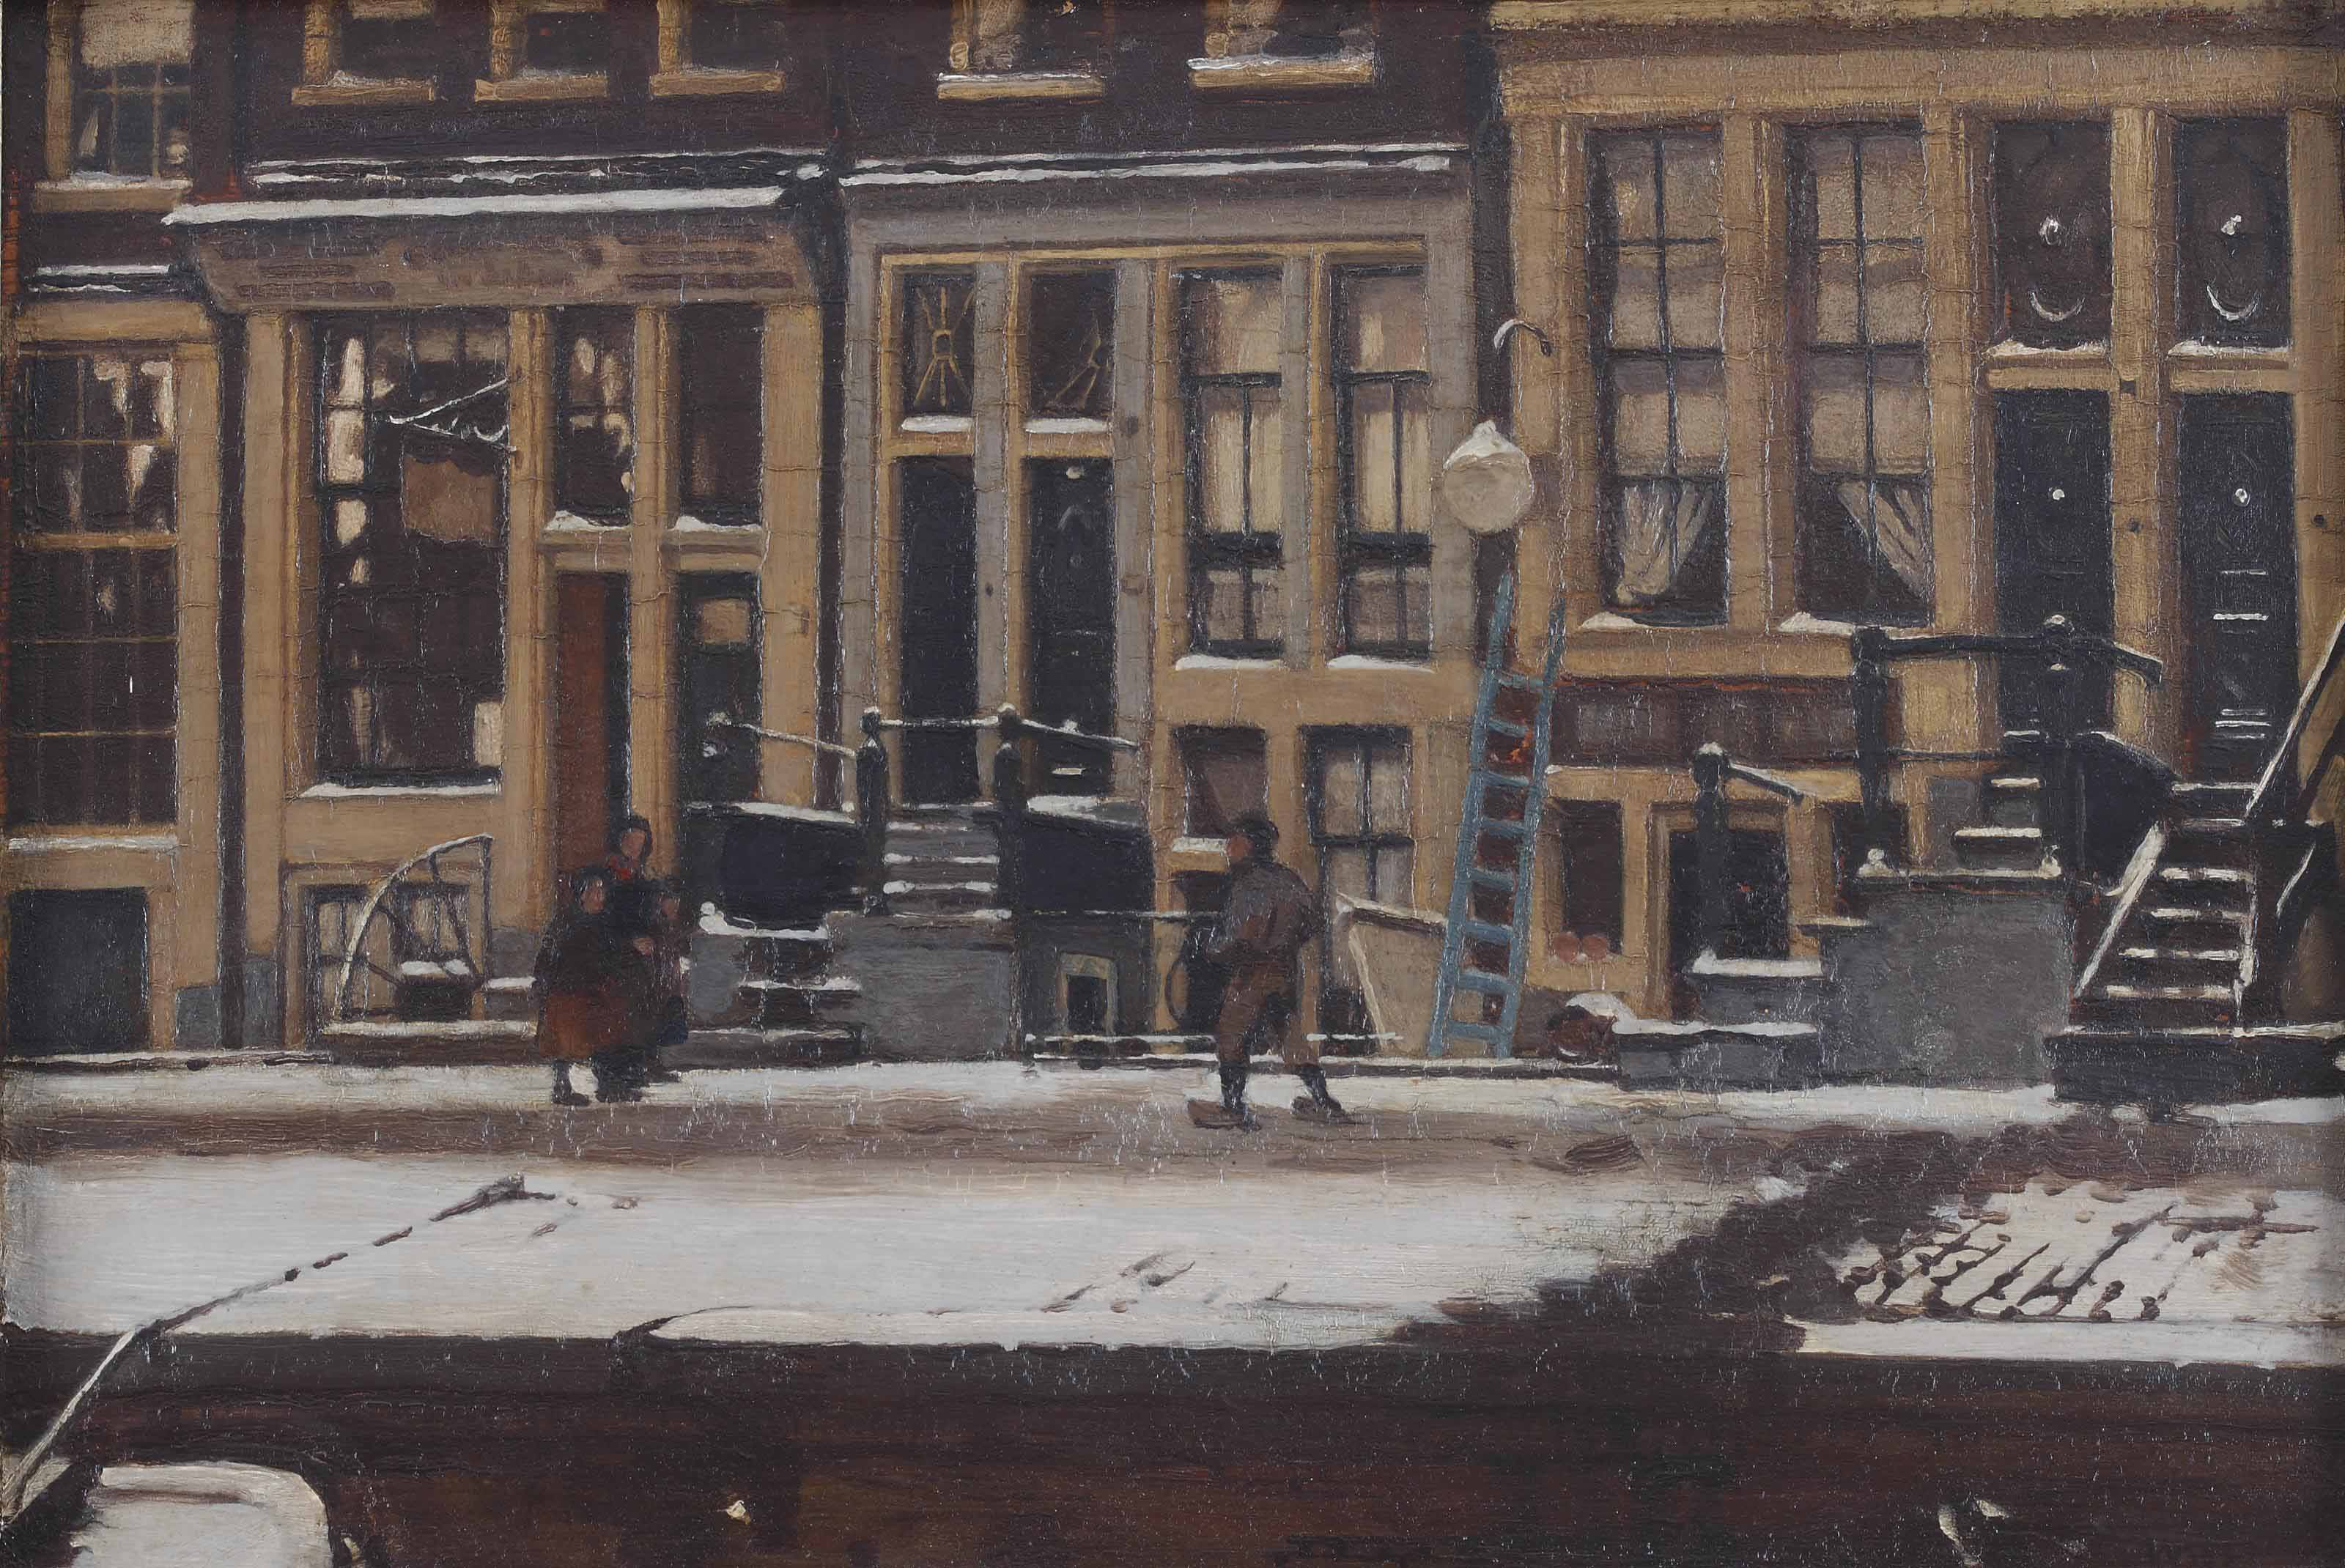 The Oude Waal in winter, Amsterdam